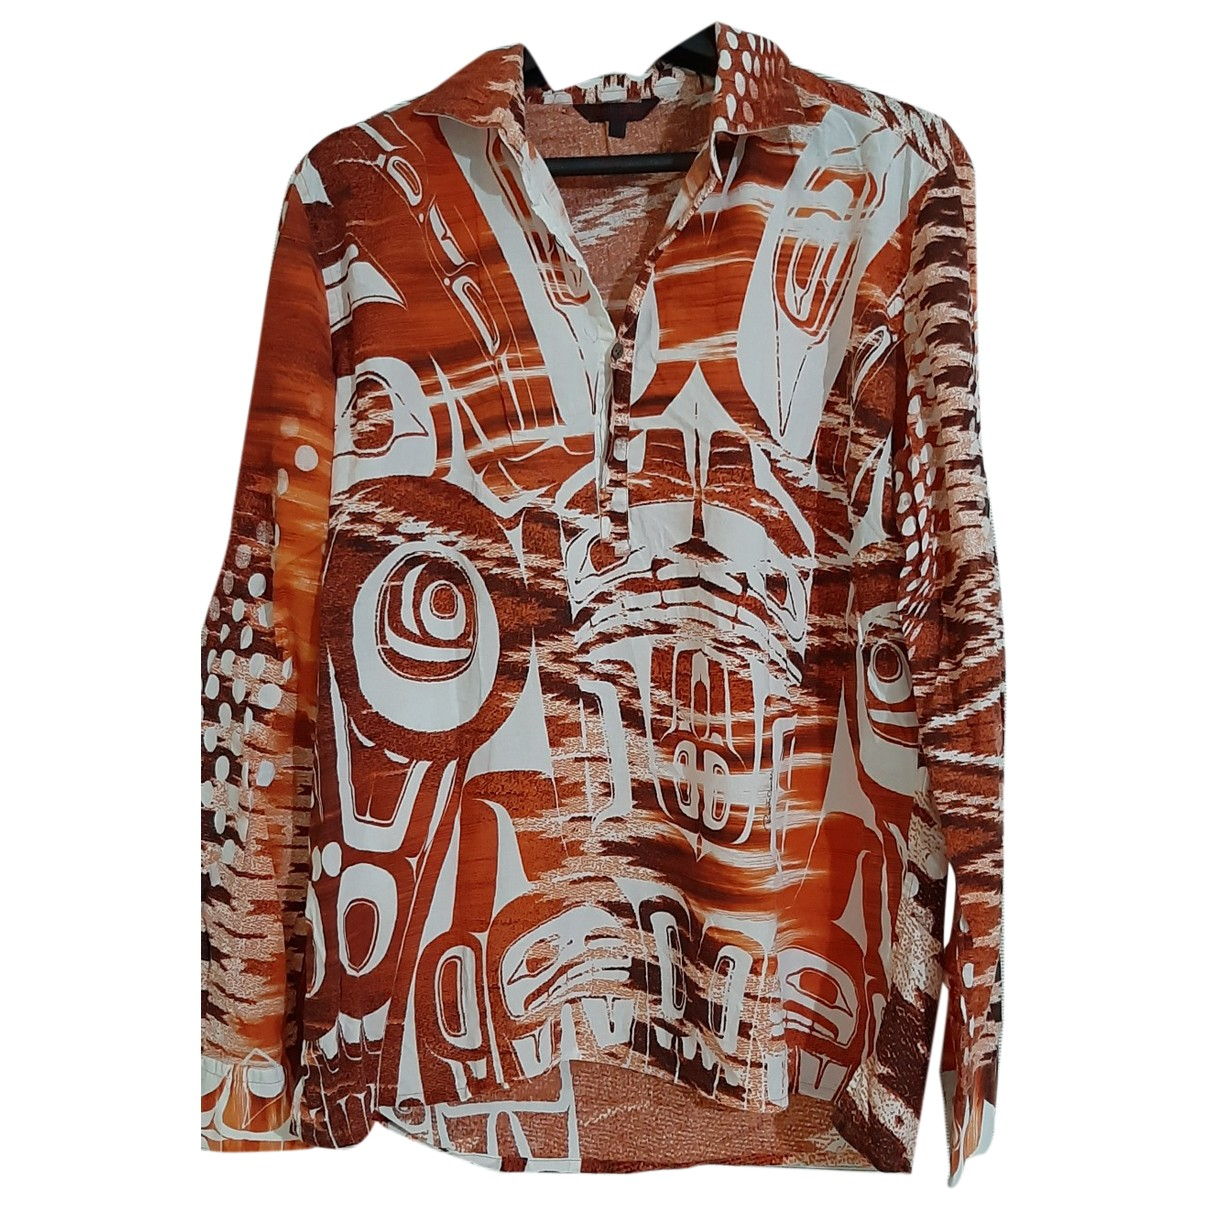 Roberto Cavalli \N Multicolour Cotton Shirts for Men S International